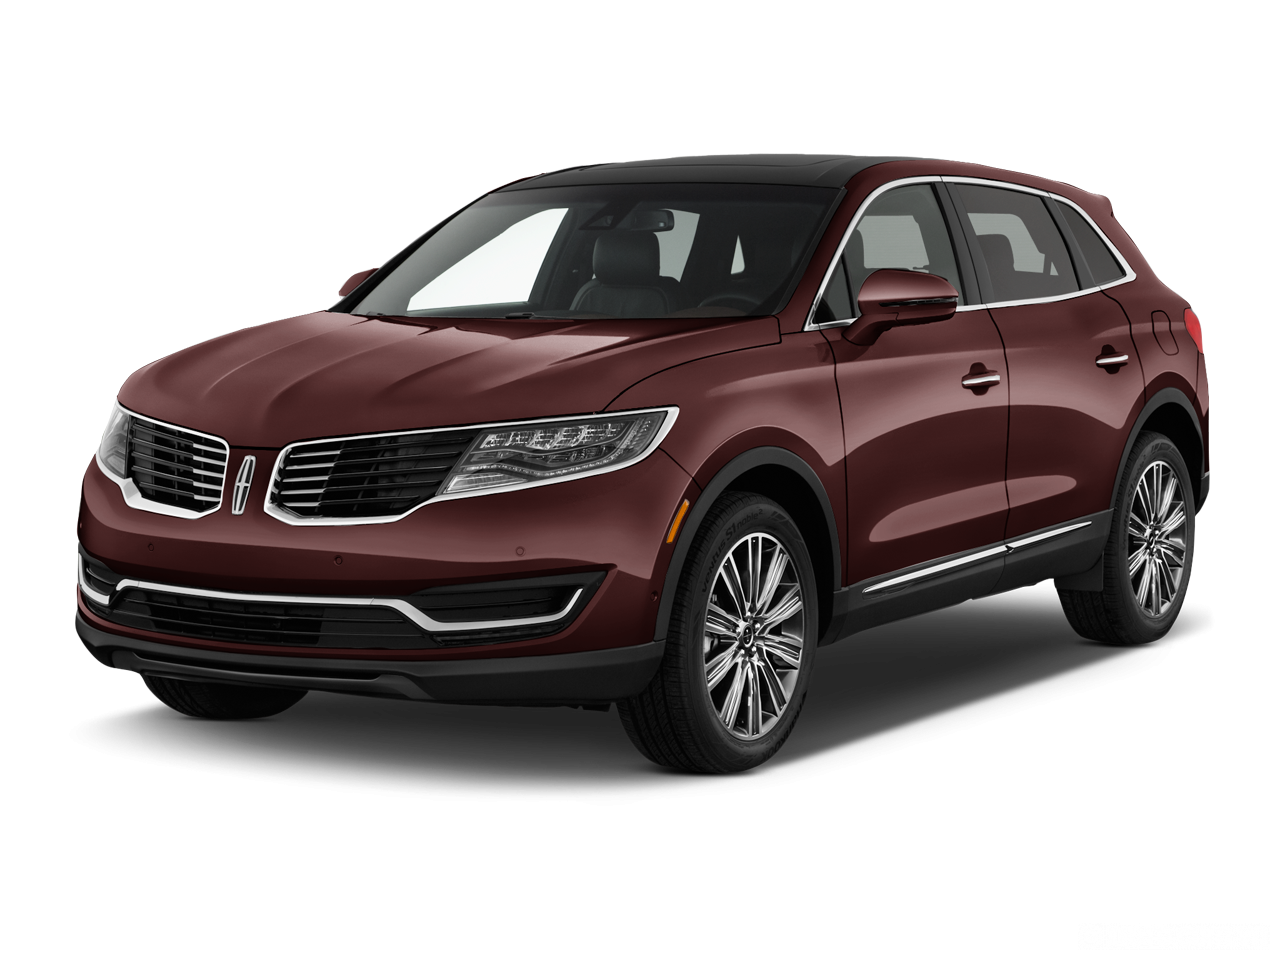 Lincoln MKX 2020